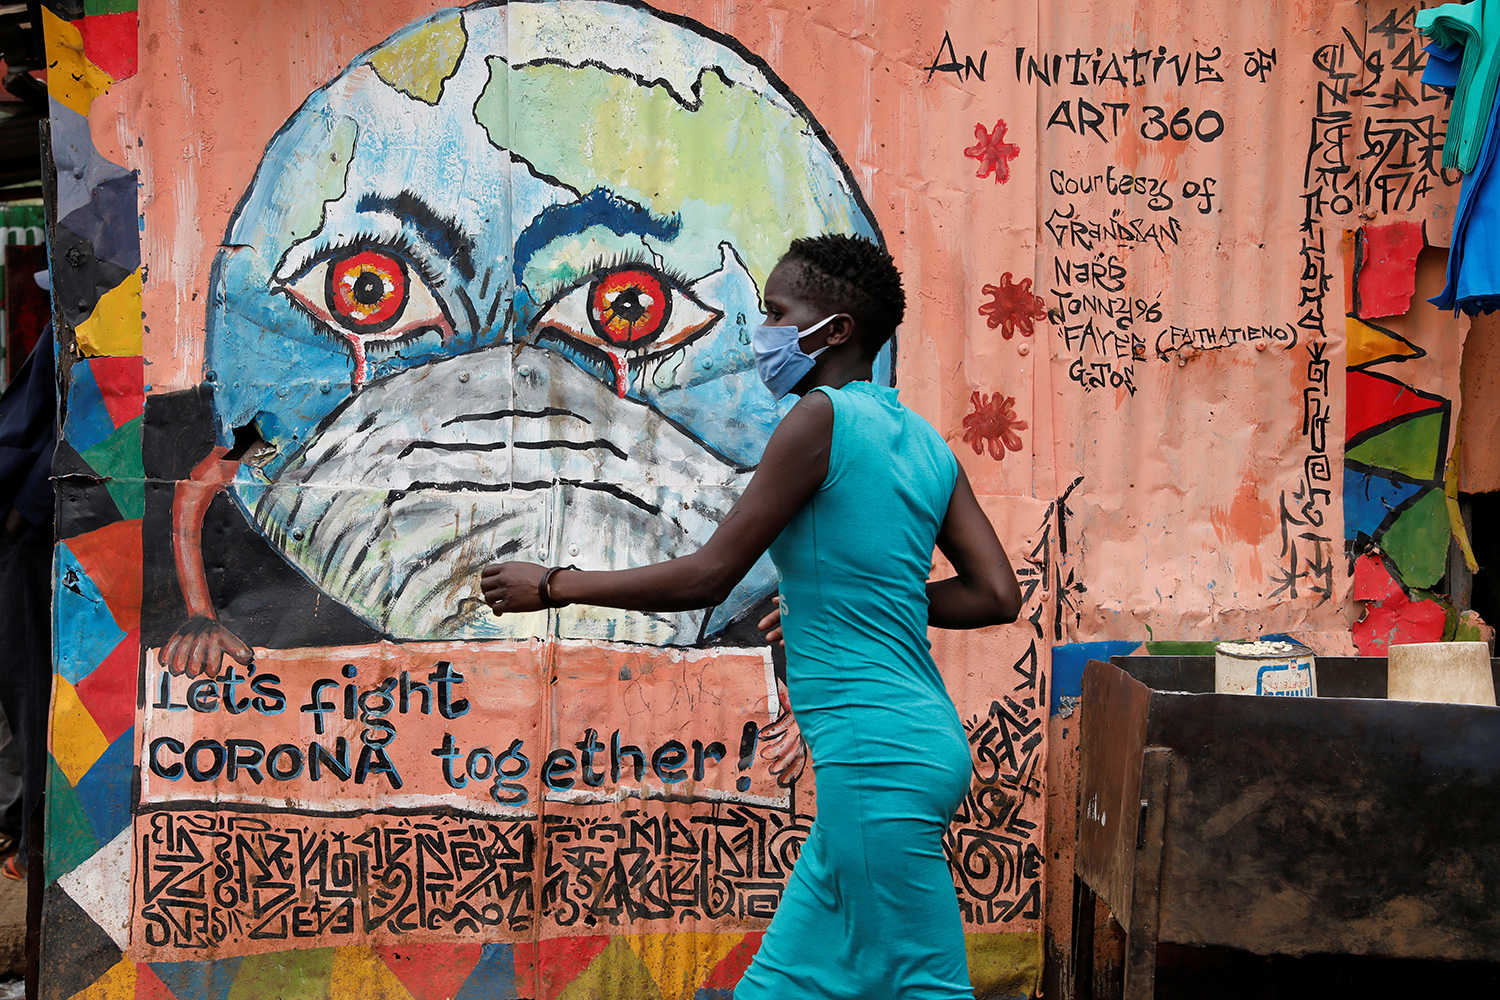 A woman walks past a graffiti promoting the fight against the spread of the coronavirus disease (COVID-19) in the Kibera slums of Nairobi, Kenya, on May 22, 2020. This is a striking photo of a woman in a blue dress wearing a facemask walking past a peach-colored wall with a graffiti of the Earth, also wearing a facemask, with bloodshot eyes and crying. REUTERS/Baz Ratner